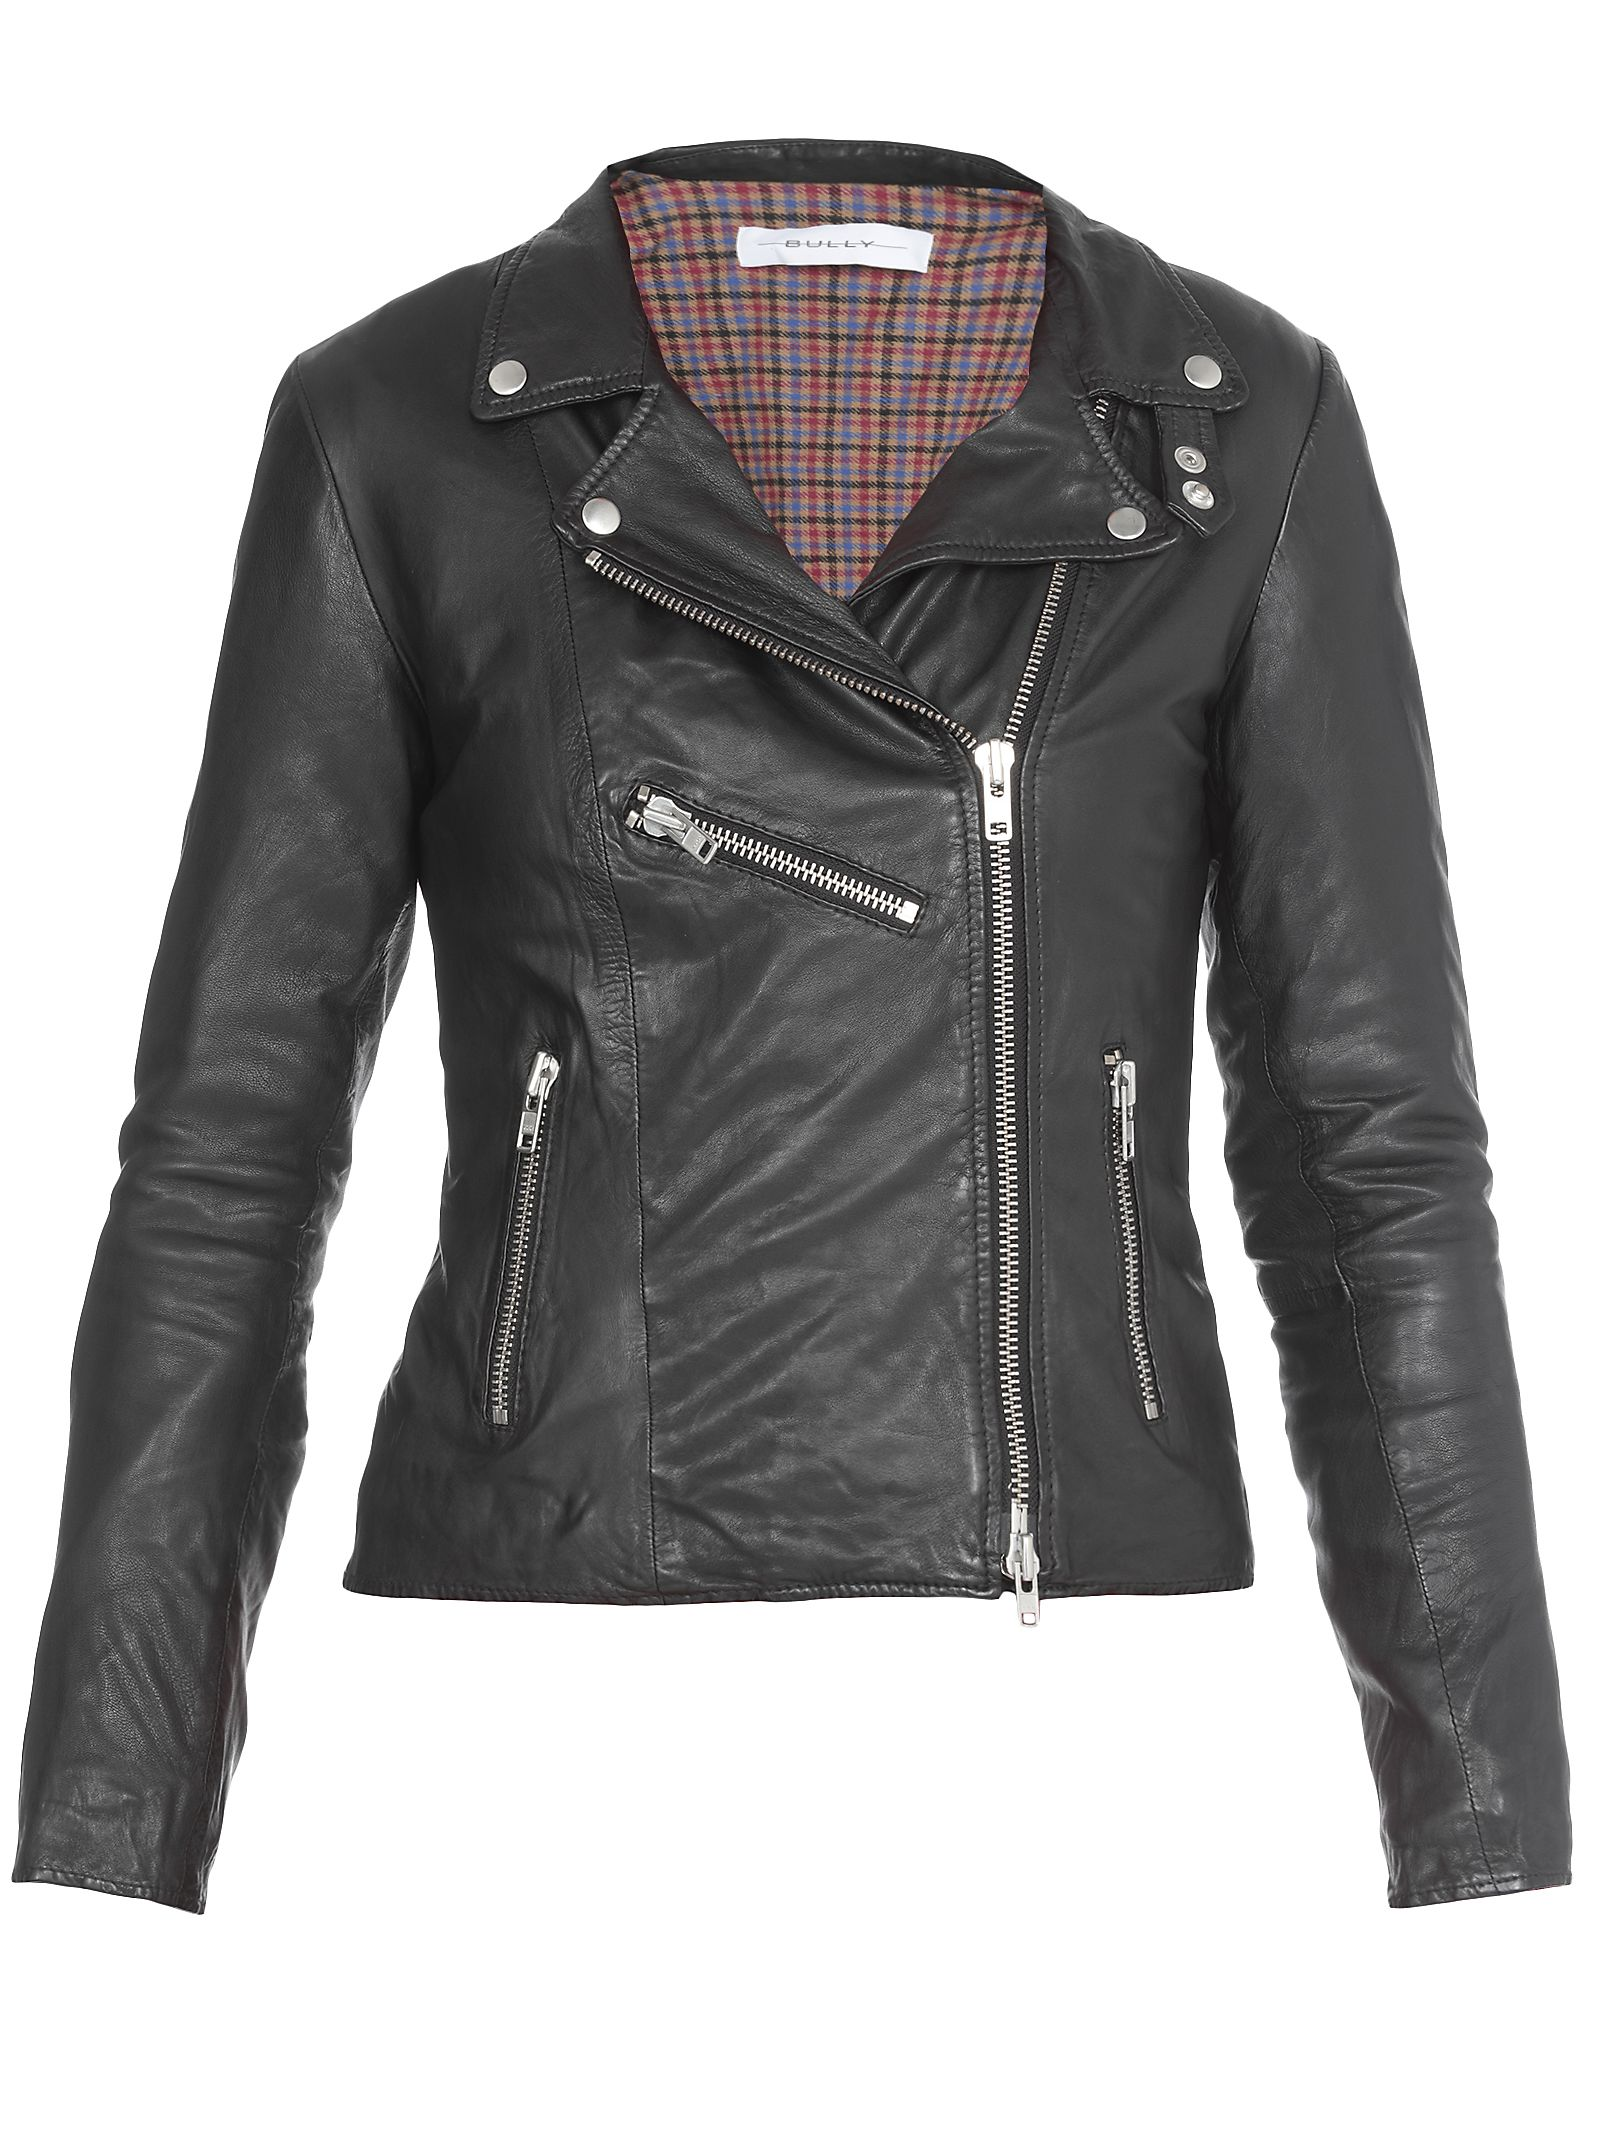 BULLY Leather Jacket in Black